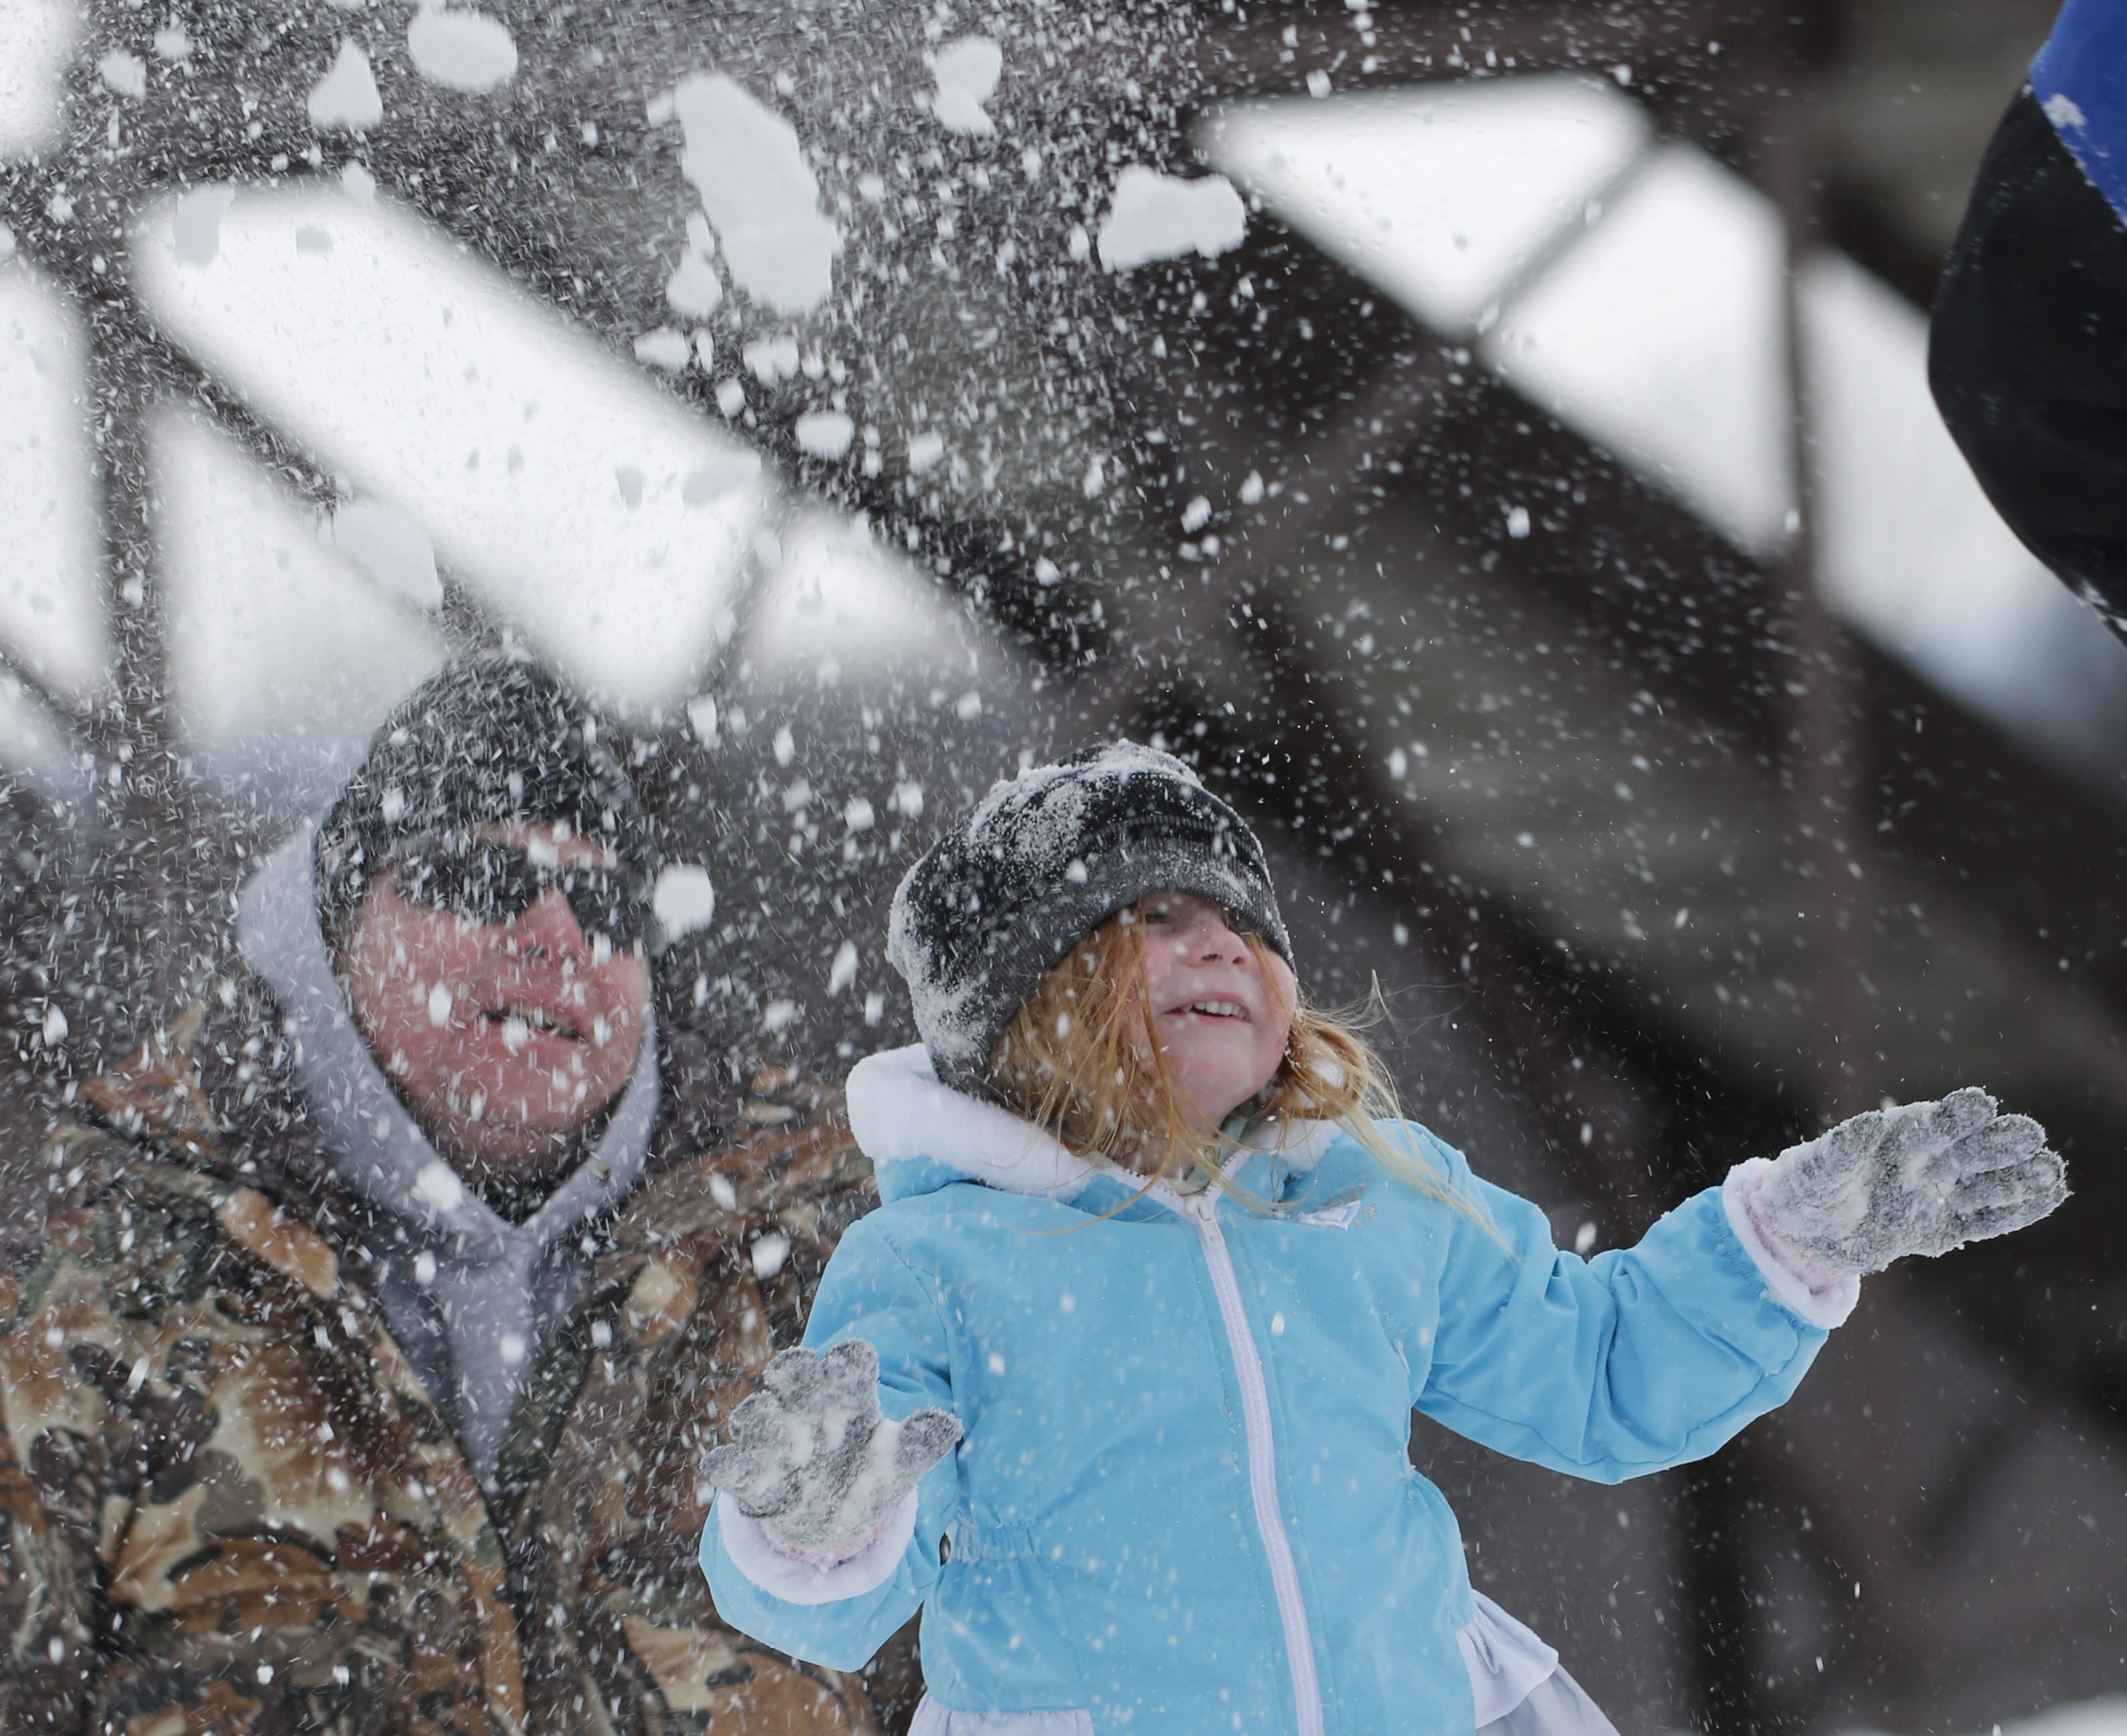 Mike Bogue of West Seneca tosses snow in the air over his 5-year-old niece Bailey Bogue of St. Augustine, Fla., who was playing in the snow for the first time in her life at Chestnut Ridge Park in Orchard Park, Saturday, Dec. 19, 2015.